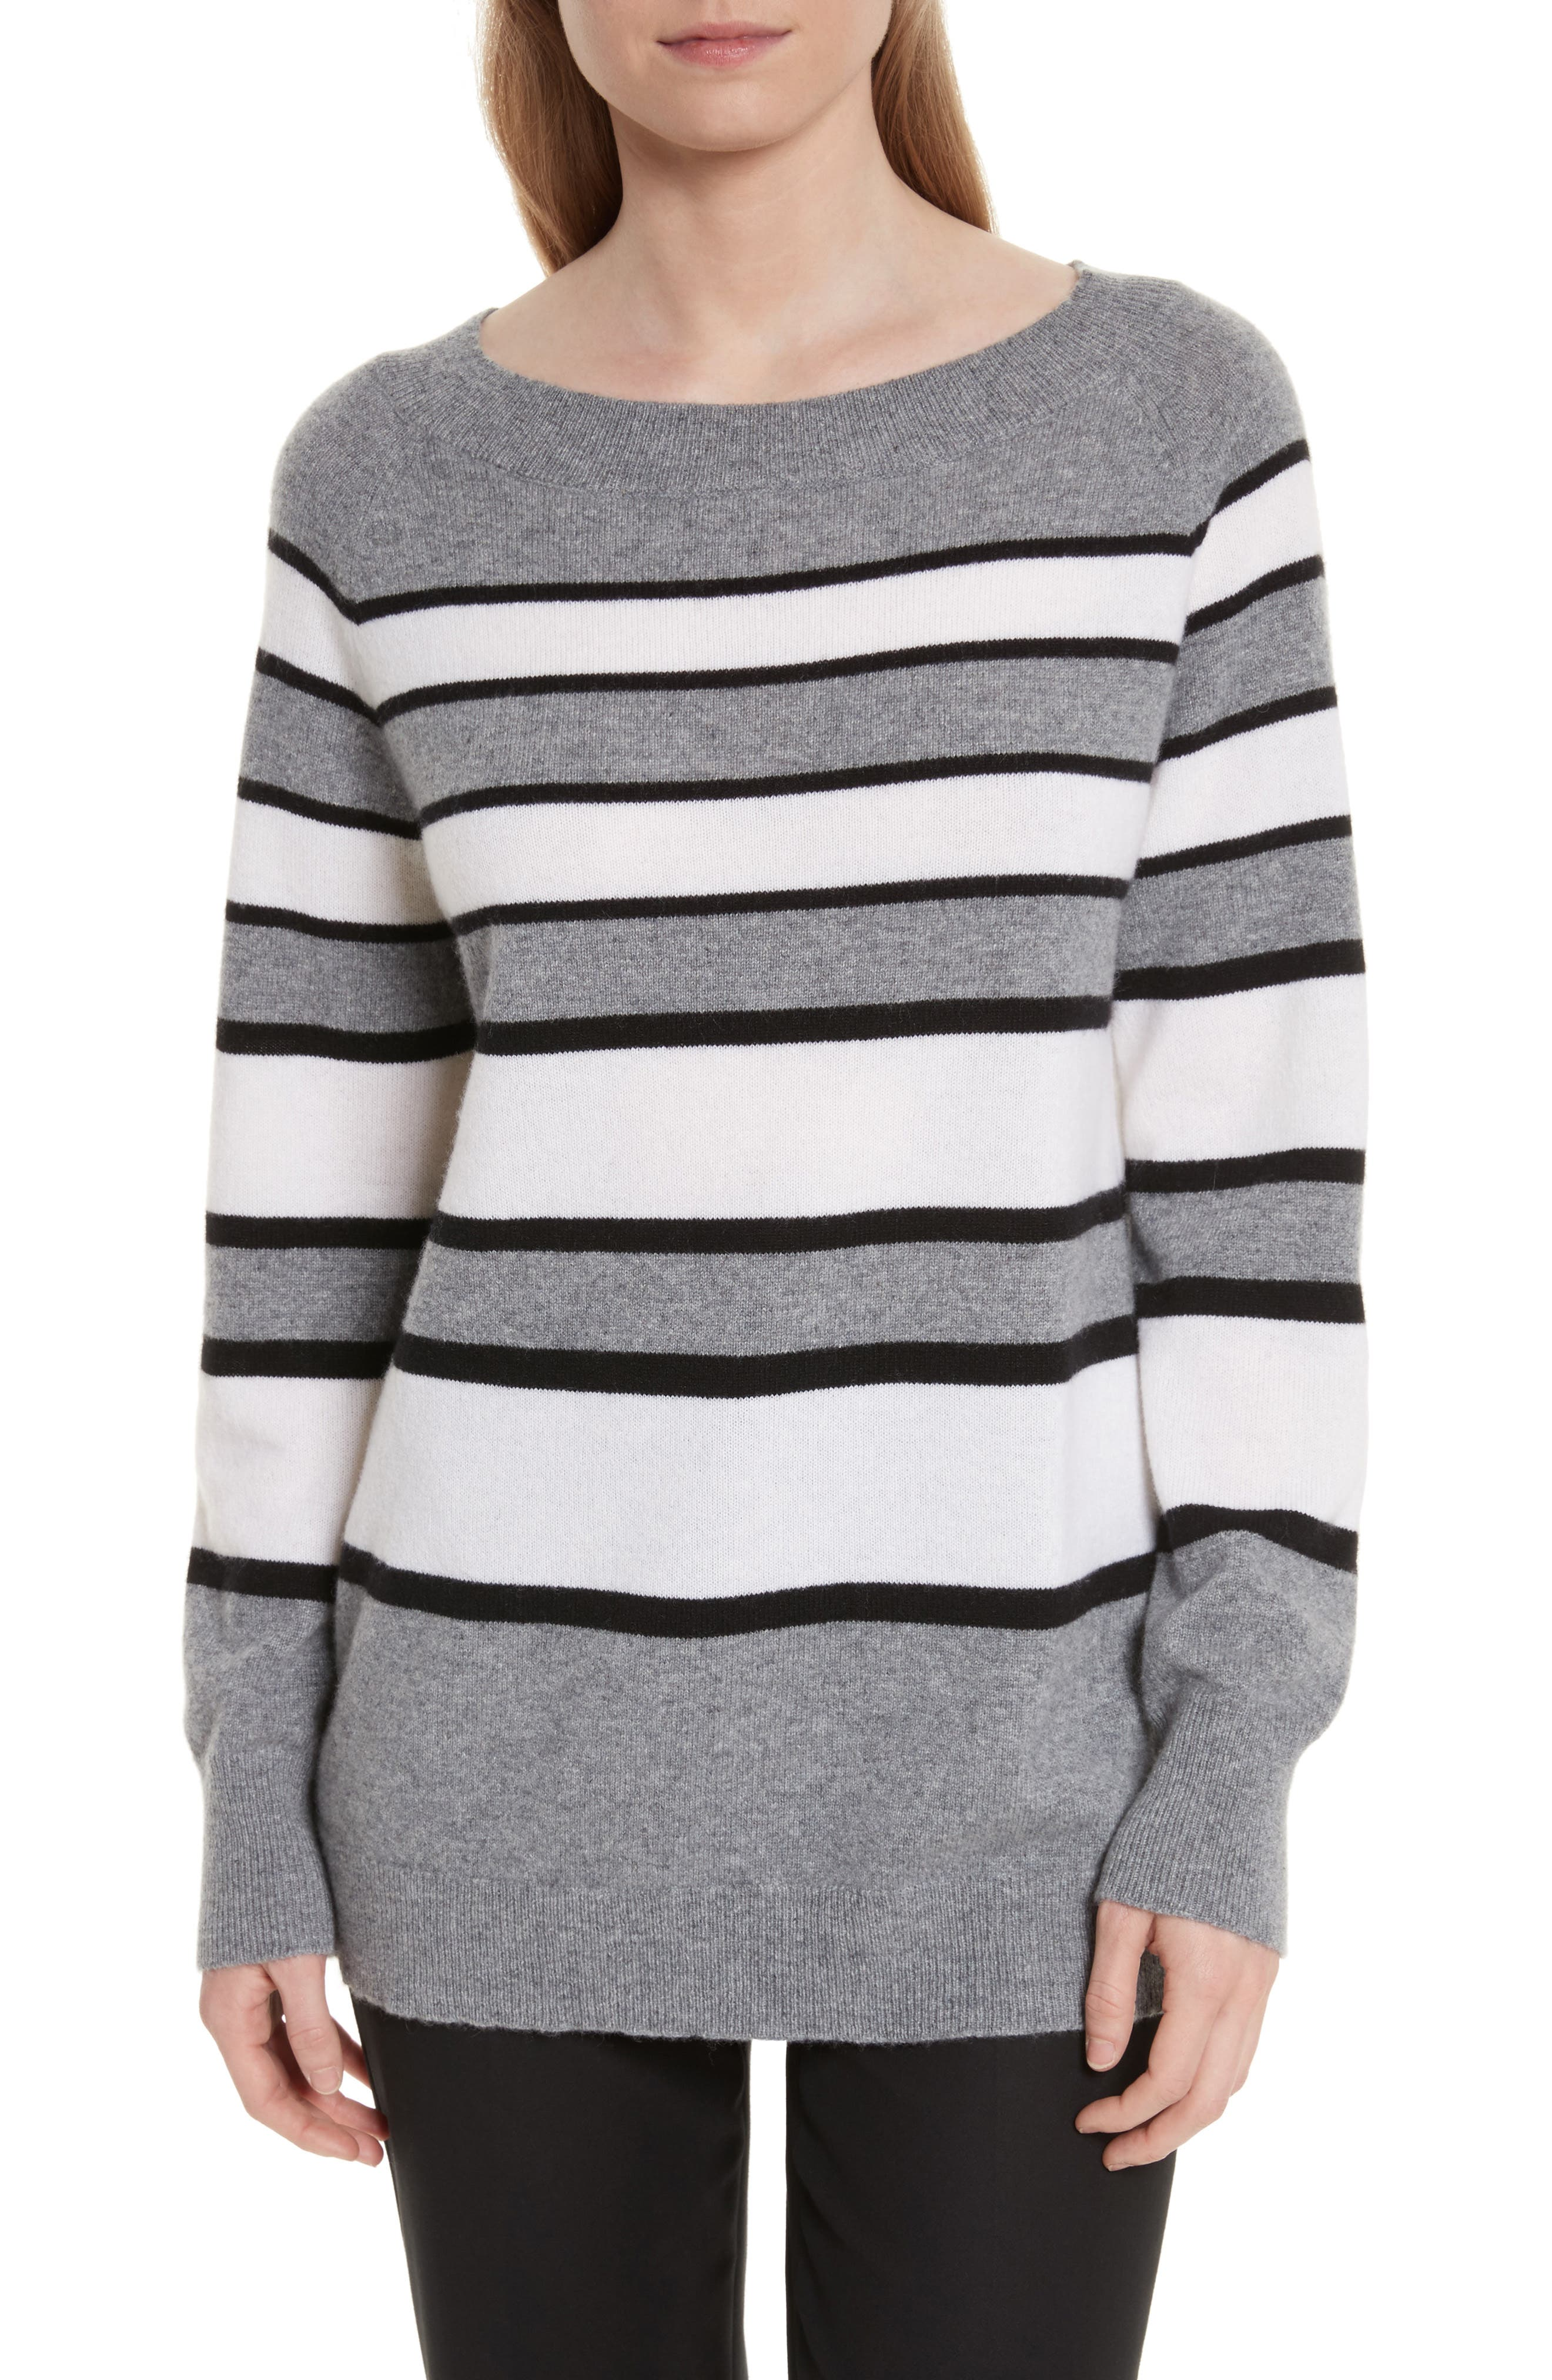 Cody Stripe Cashmere Boat Neck Sweater,                             Main thumbnail 1, color,                             077